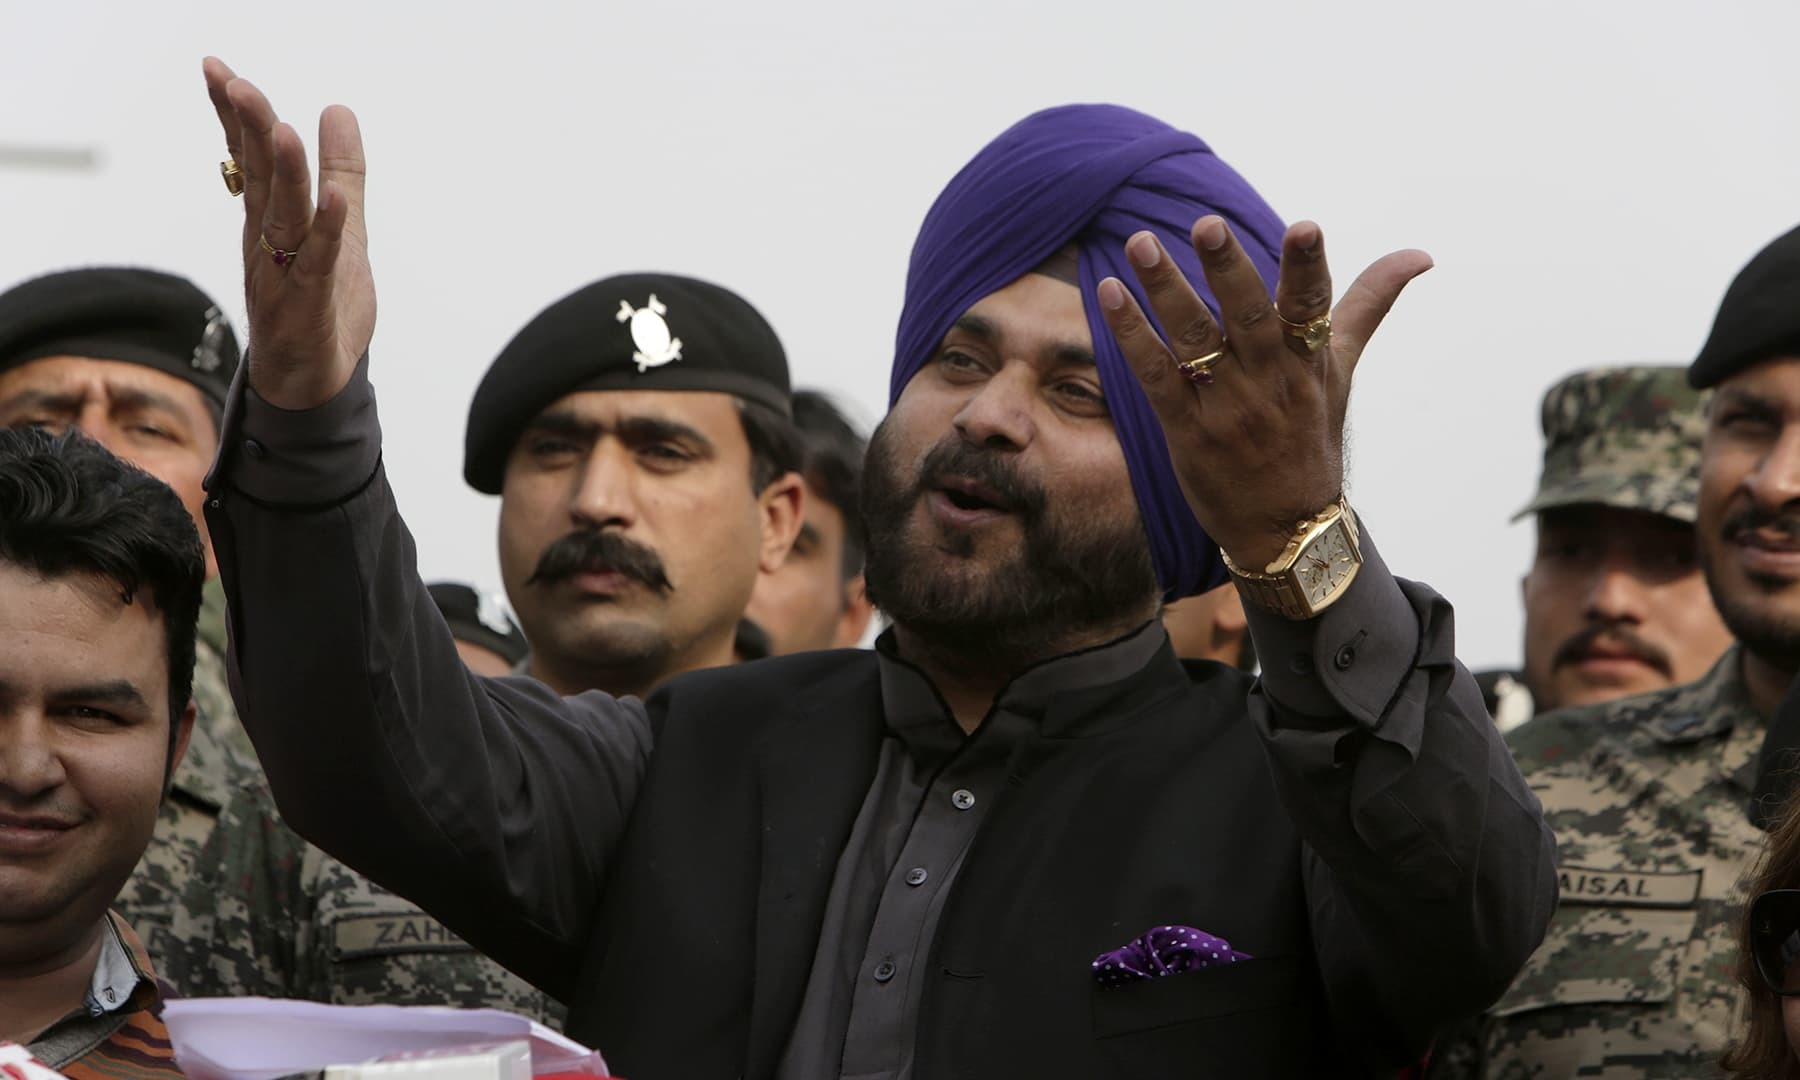 Sidhu sacked from 'The Kapil Sharma Show' over remarks about